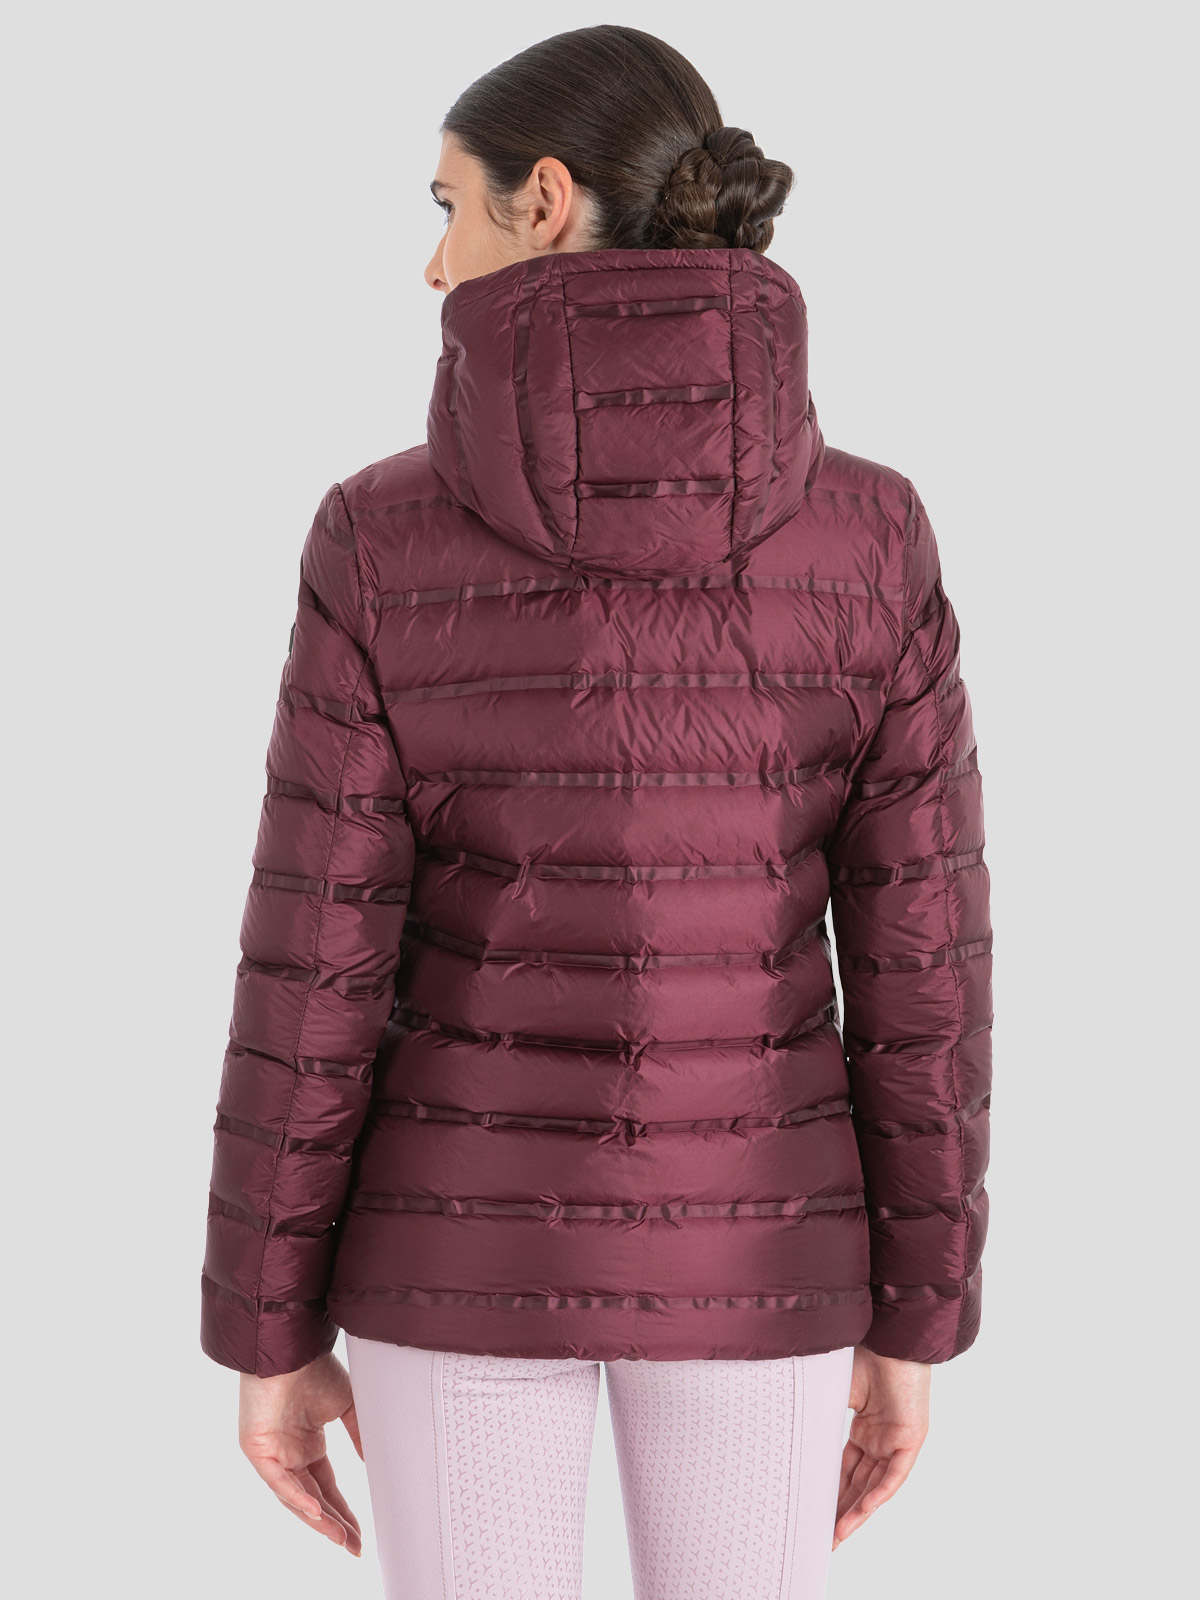 ADIZ WOMEN'S ECO DOWN JACKET 3